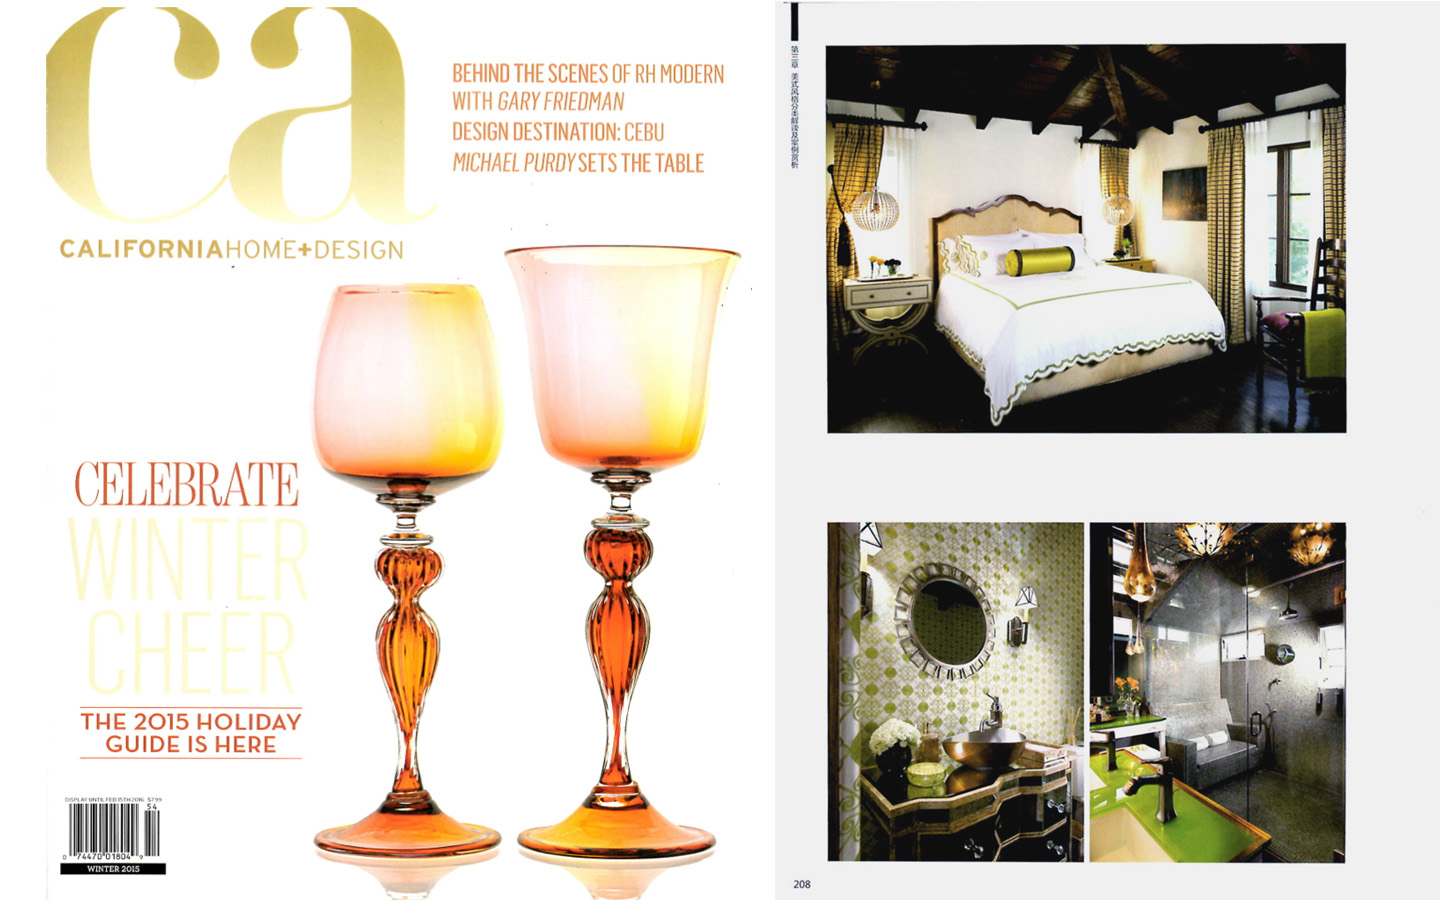 California home and design holiday guide winter 2015 for California home and design magazine